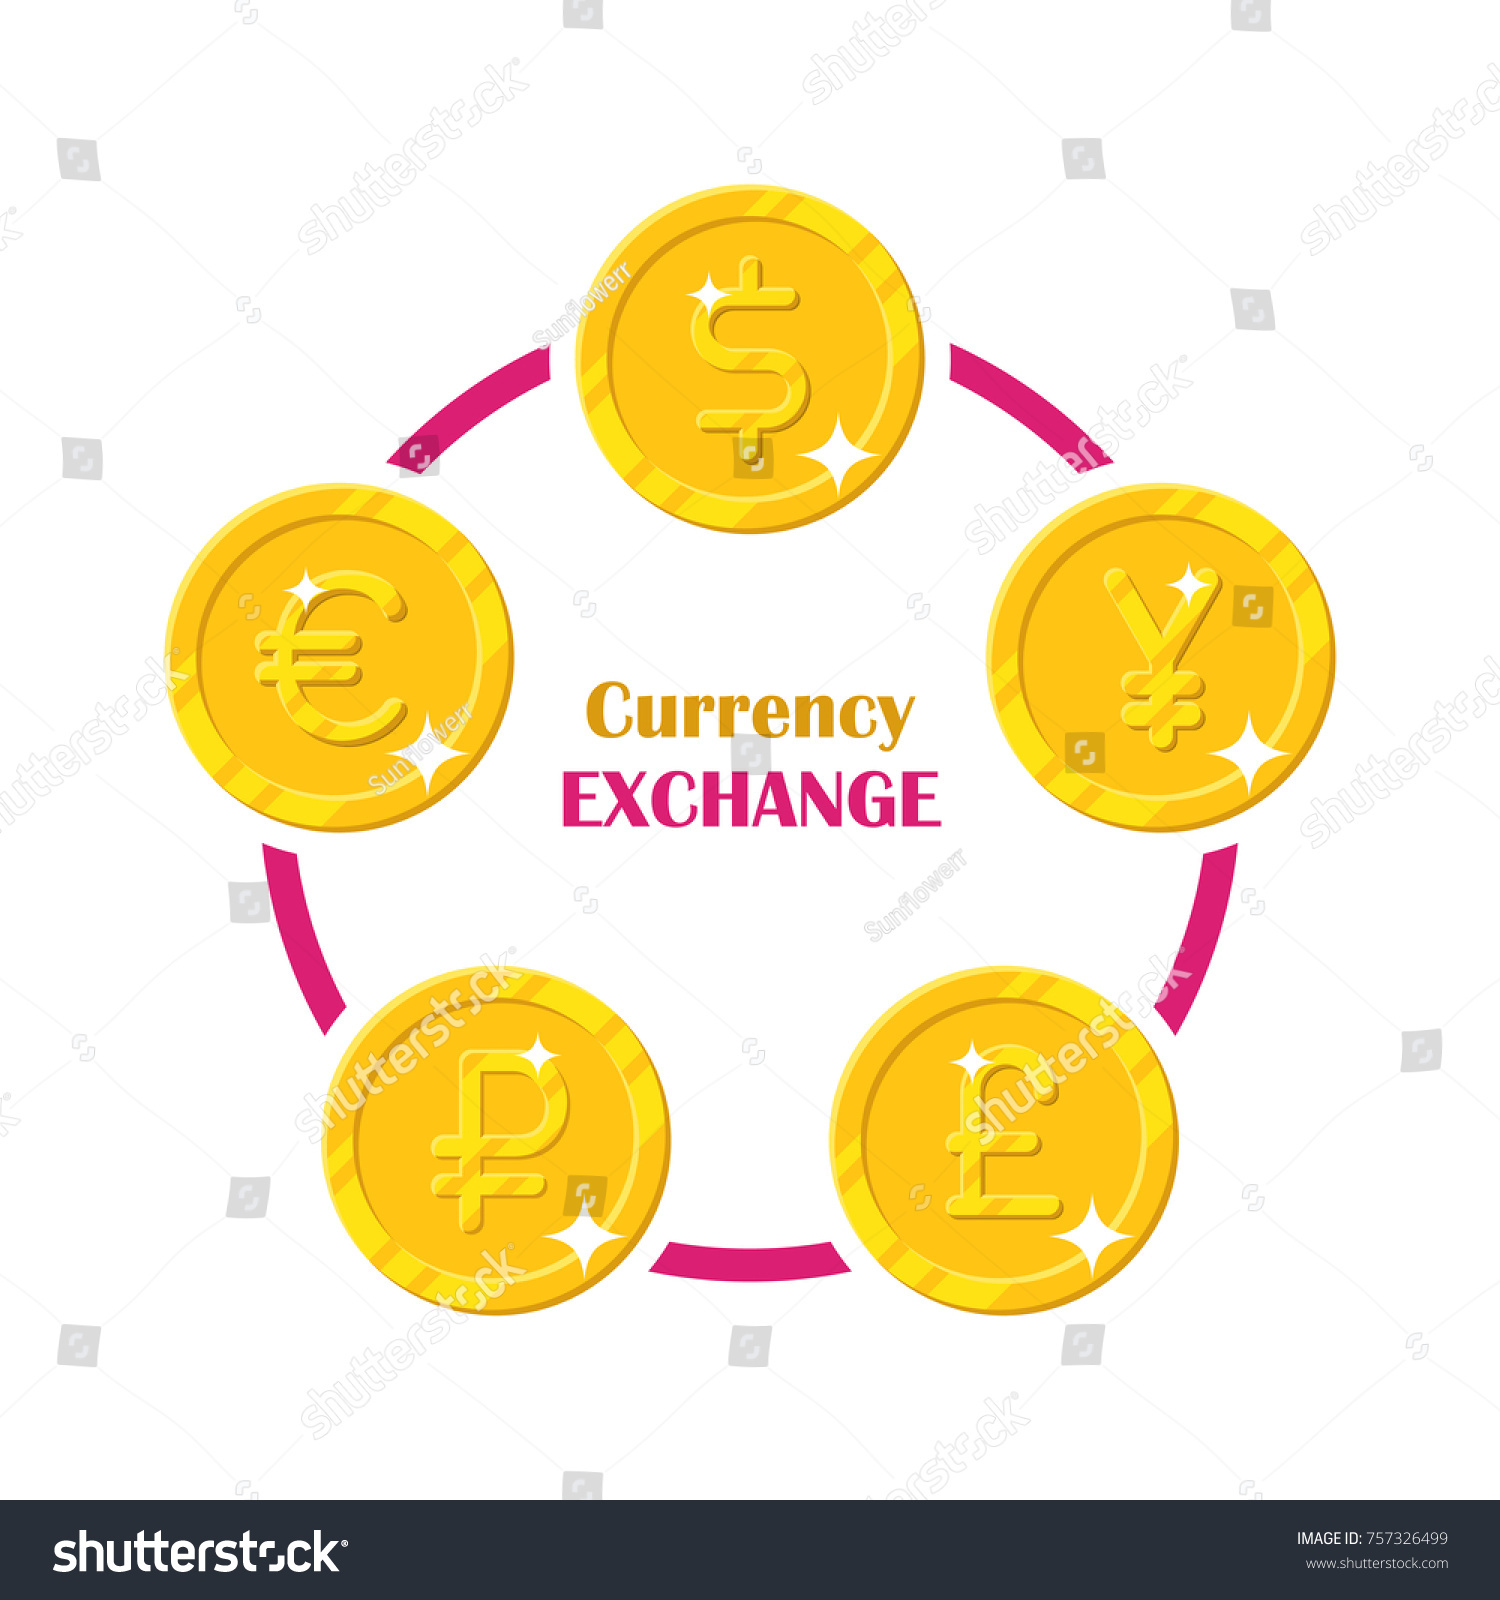 Coins world currency exchange dollar euro stock illustration coins world currency exchange dollar euro yuan pound ruble symbol for biocorpaavc Image collections